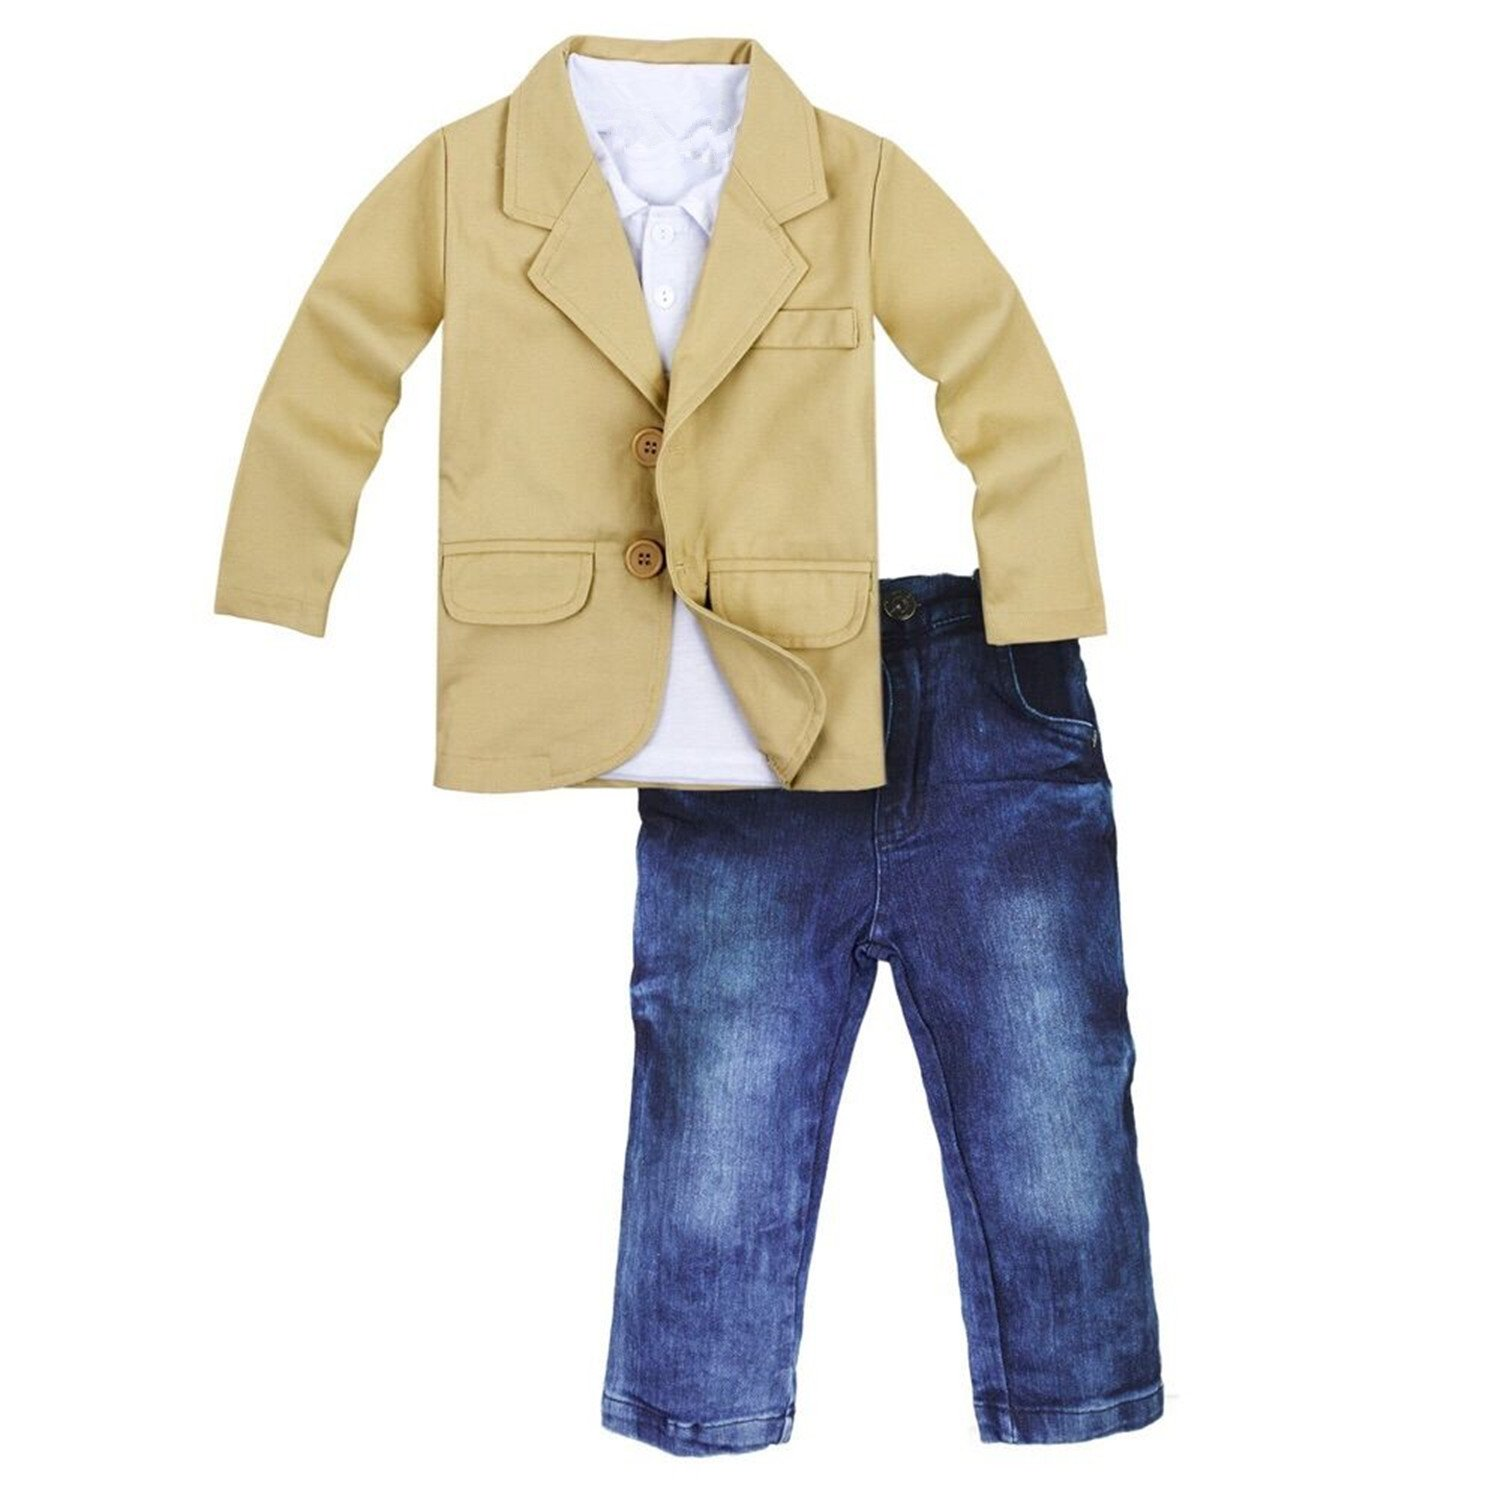 Kids 1950s Clothing & Costumes: Girls, Boys, Toddlers Baby Boy Gentleman 3 Pieces Shirt Jacket Jeans Set Toddler Pants Clothing $24.99 AT vintagedancer.com